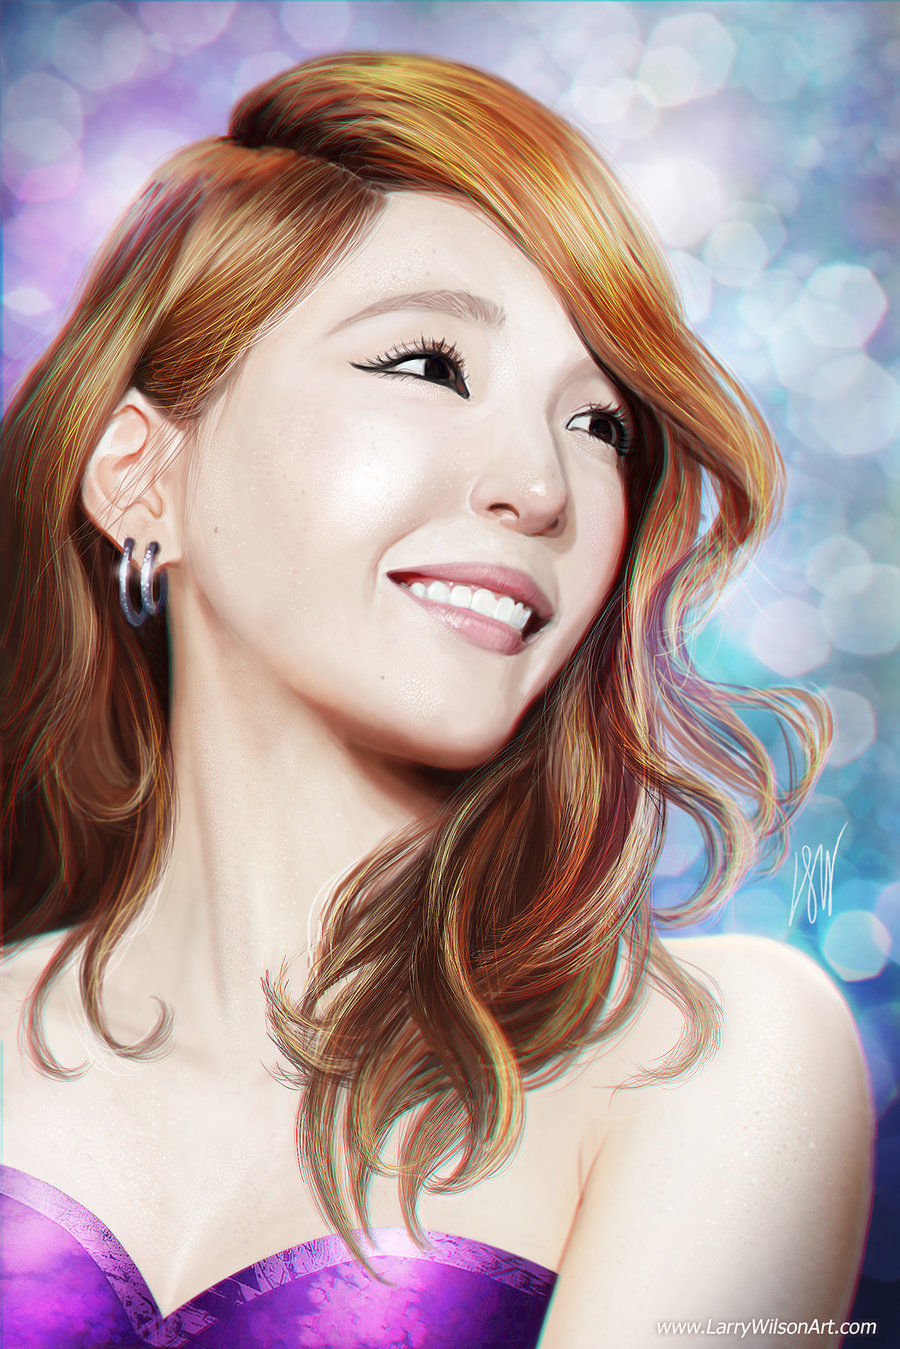 tiffany___girl_s_generation_by_larrywilson-d9xpa3k.jpg